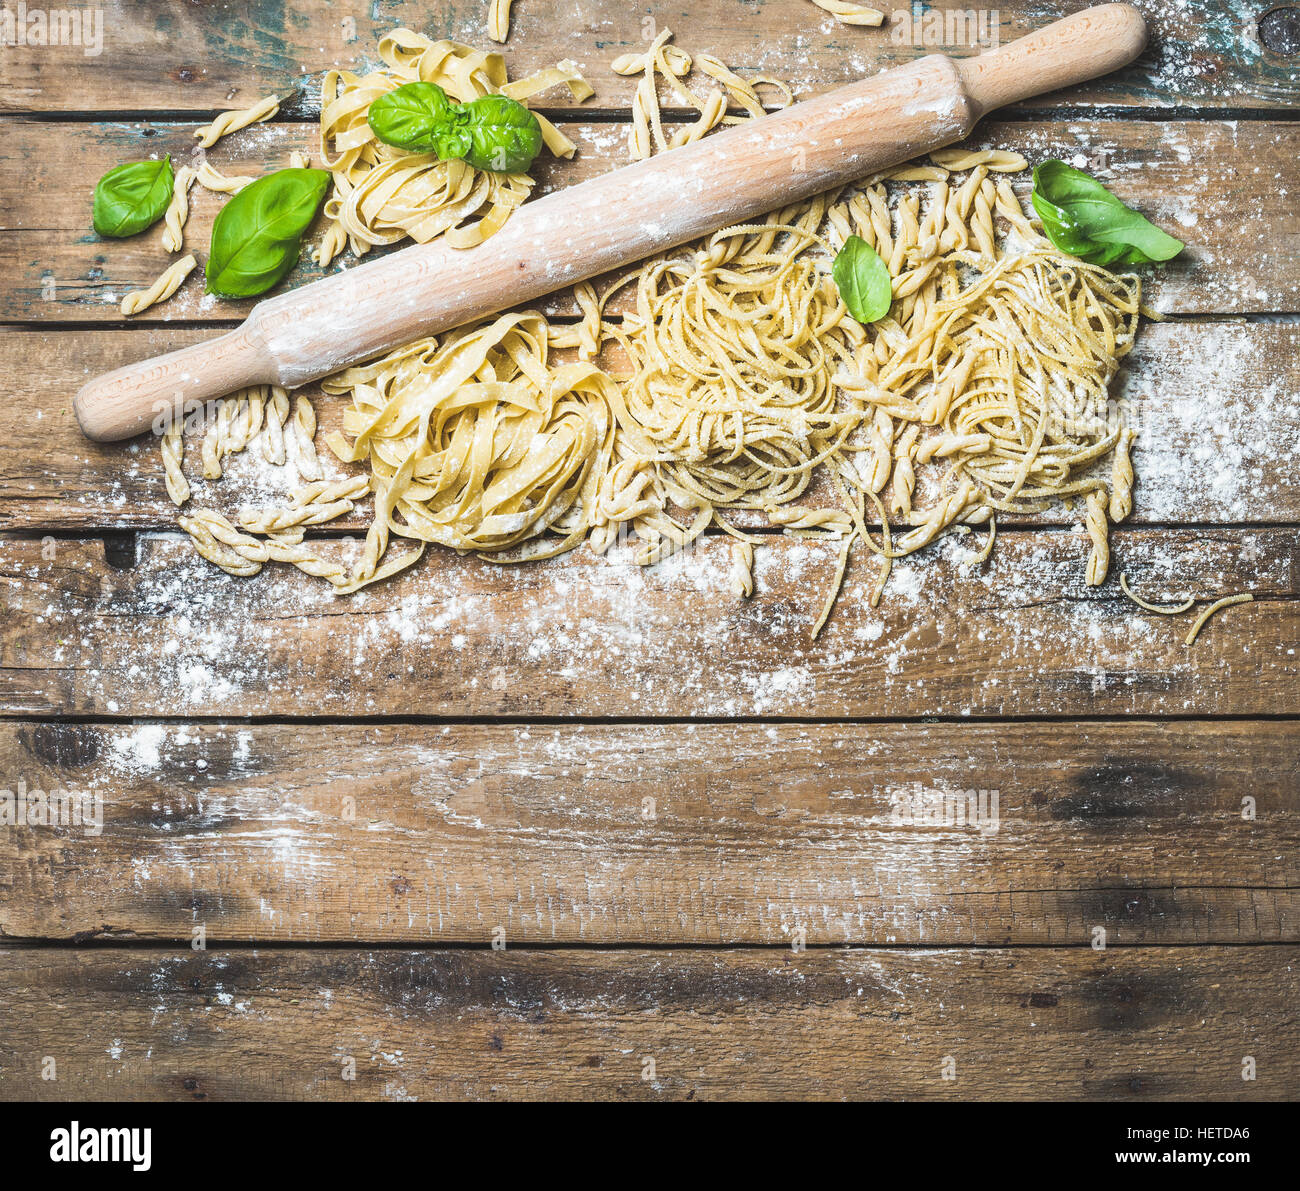 Various homemade fresh uncooked Italian pasta and plunger - Stock Image